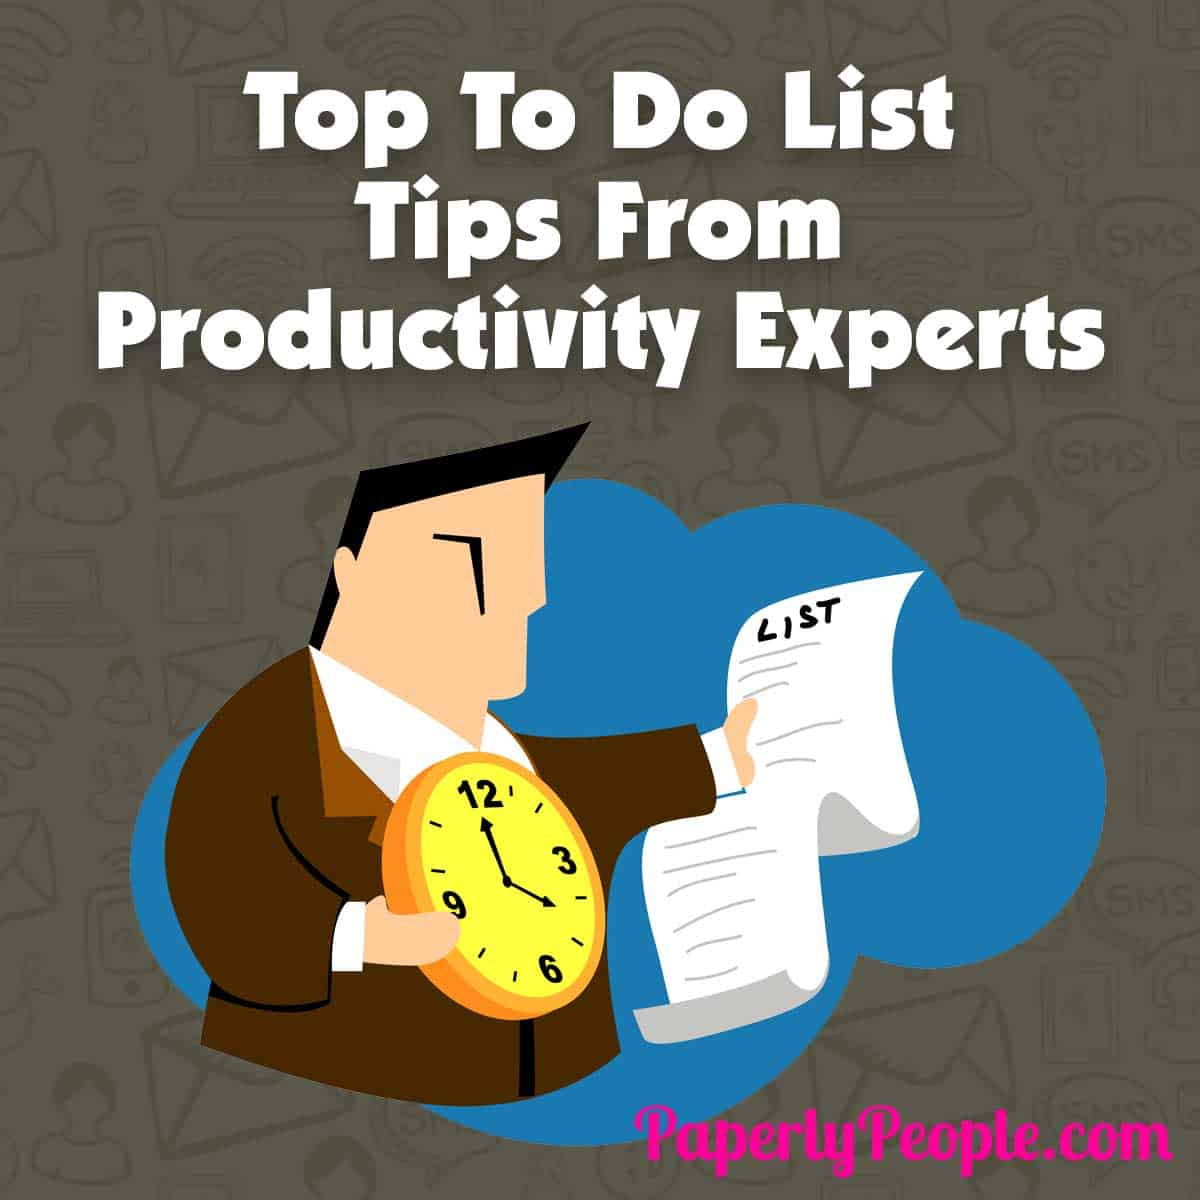 Top To Do List Tips From Productivity Experts